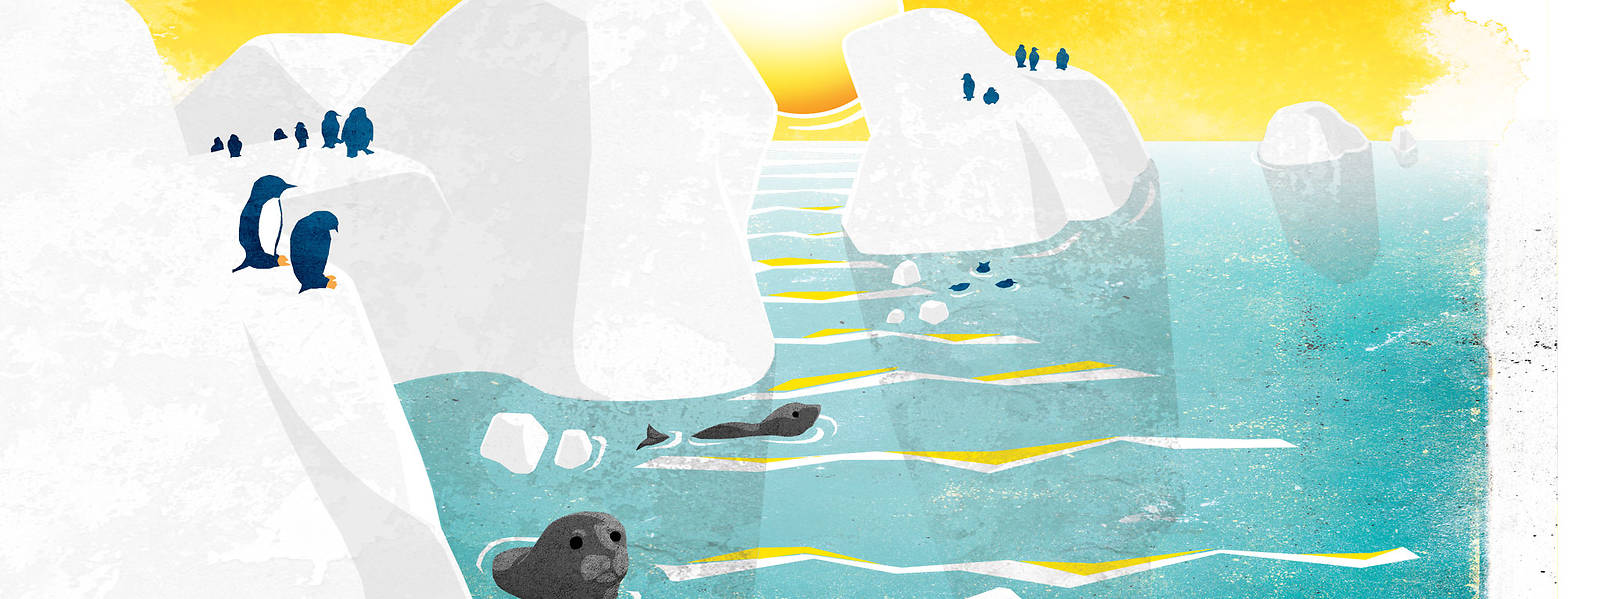 Illustration: Melting glaciers with seals and penguins in Antarctica